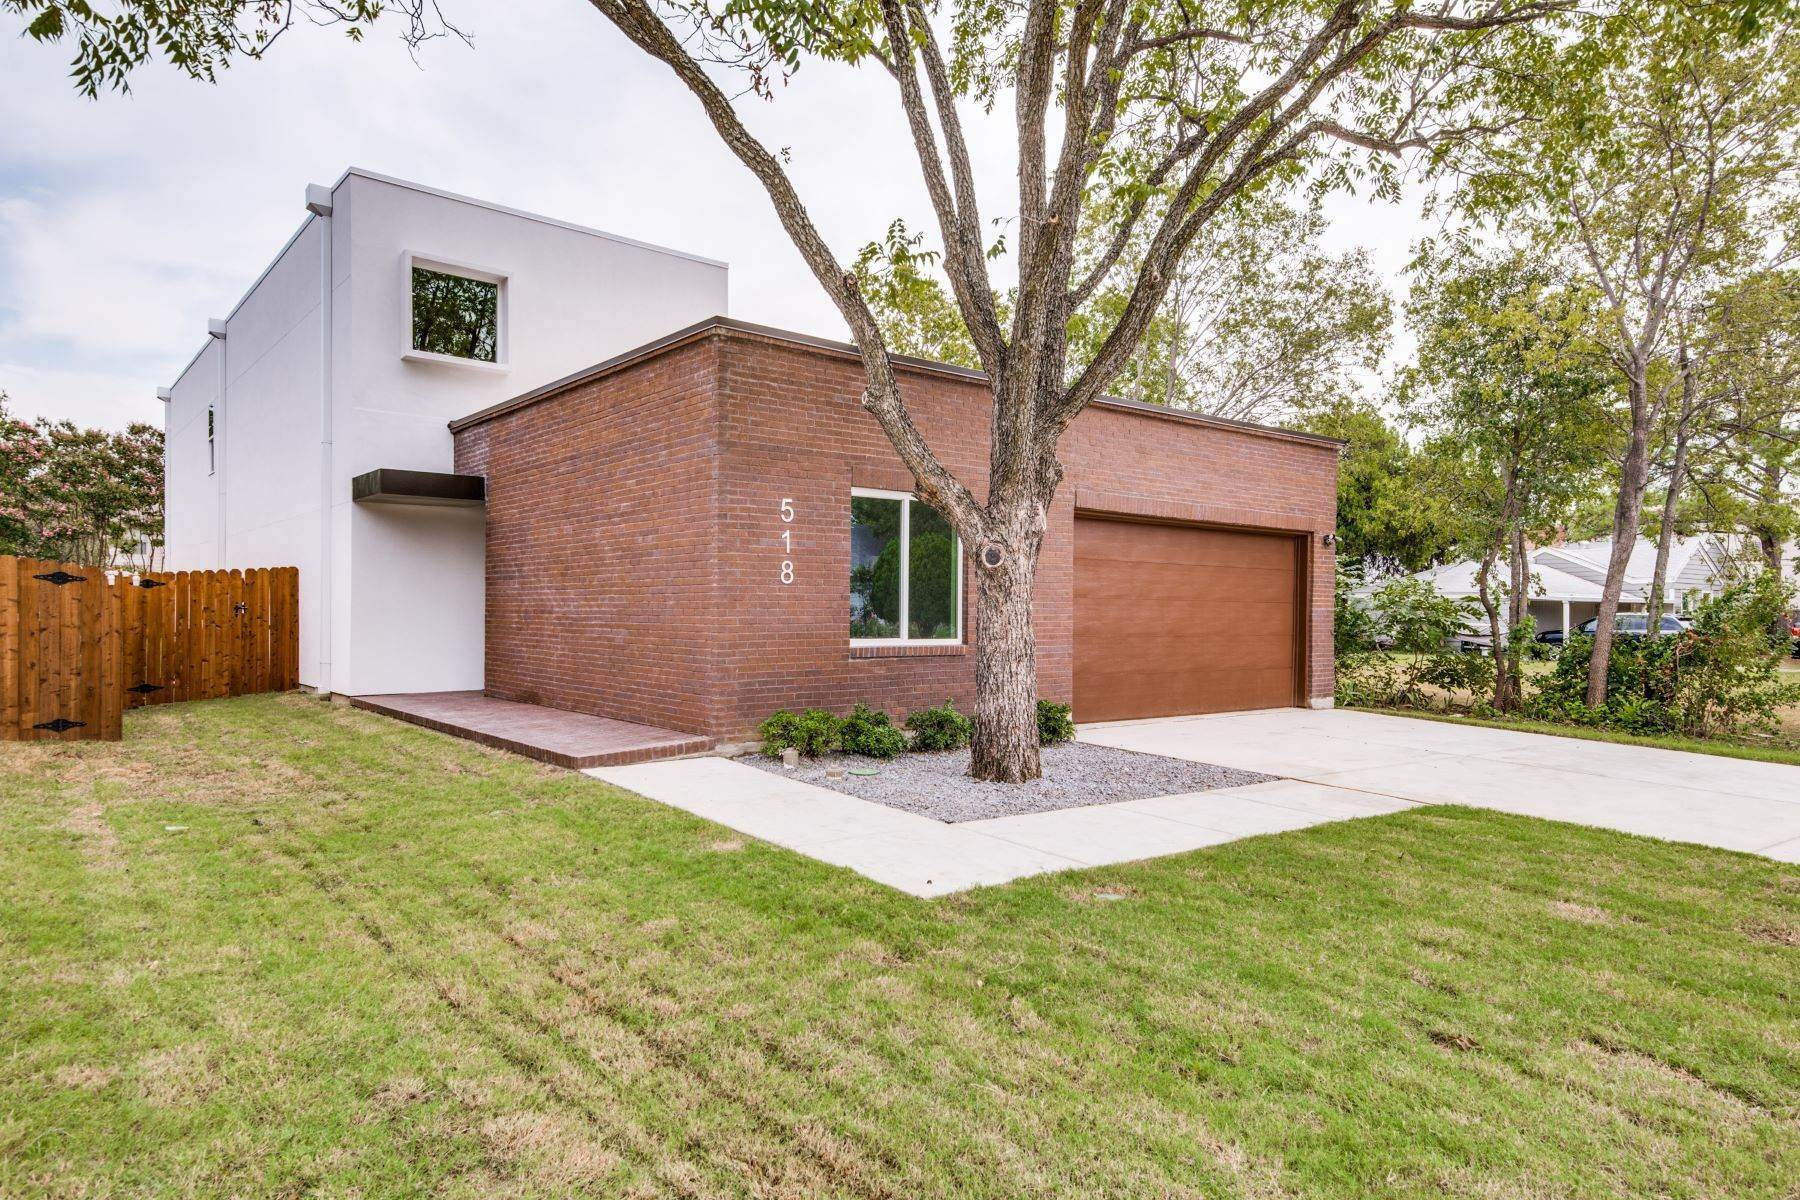 Single Family Homes for Sale at Modern New Construction in Irving 518 English Street Irving, Texas 75061 United States